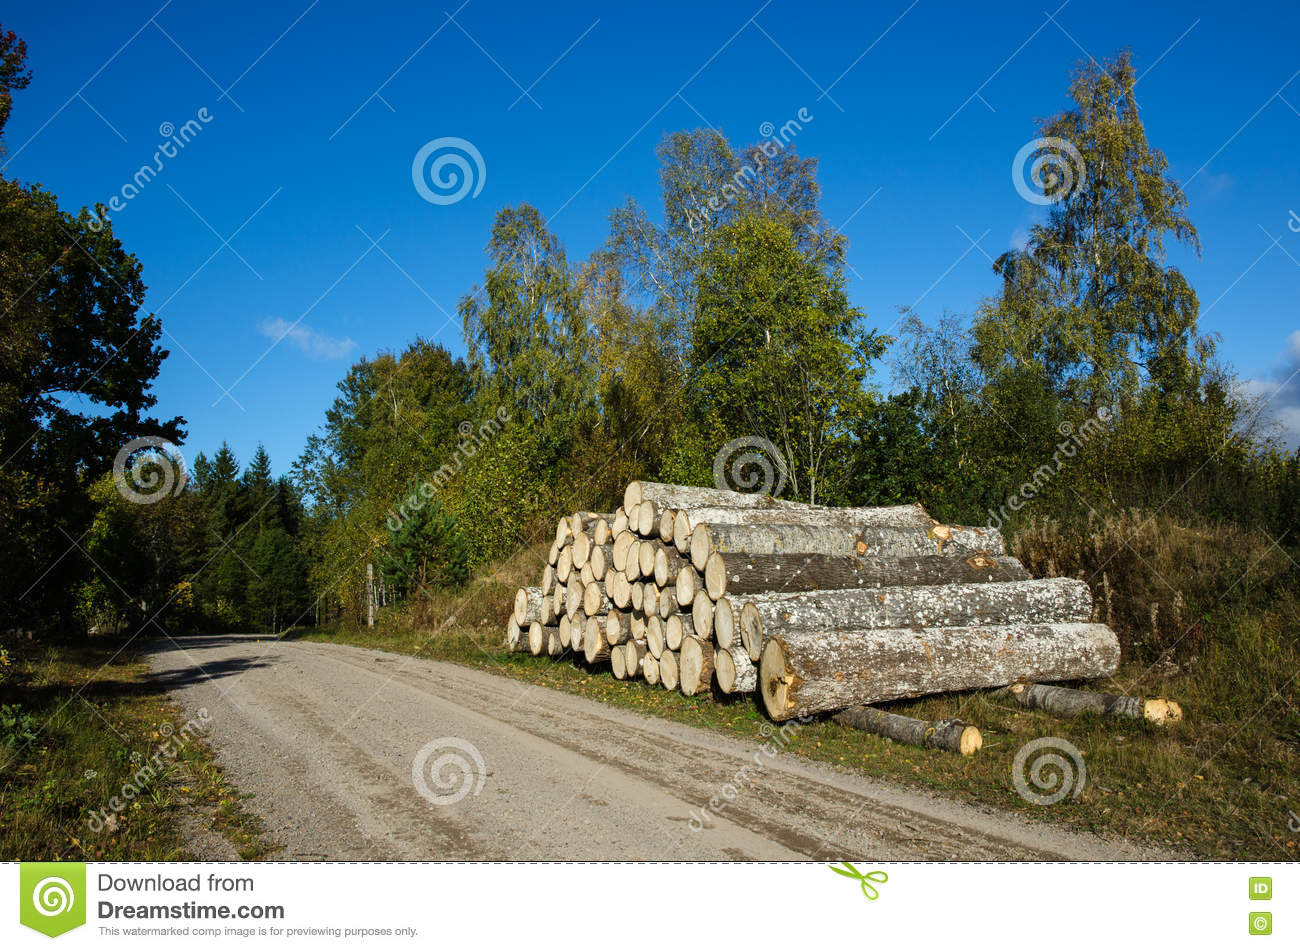 Aspen Timber Stack By Roadside Stock Image - Image of